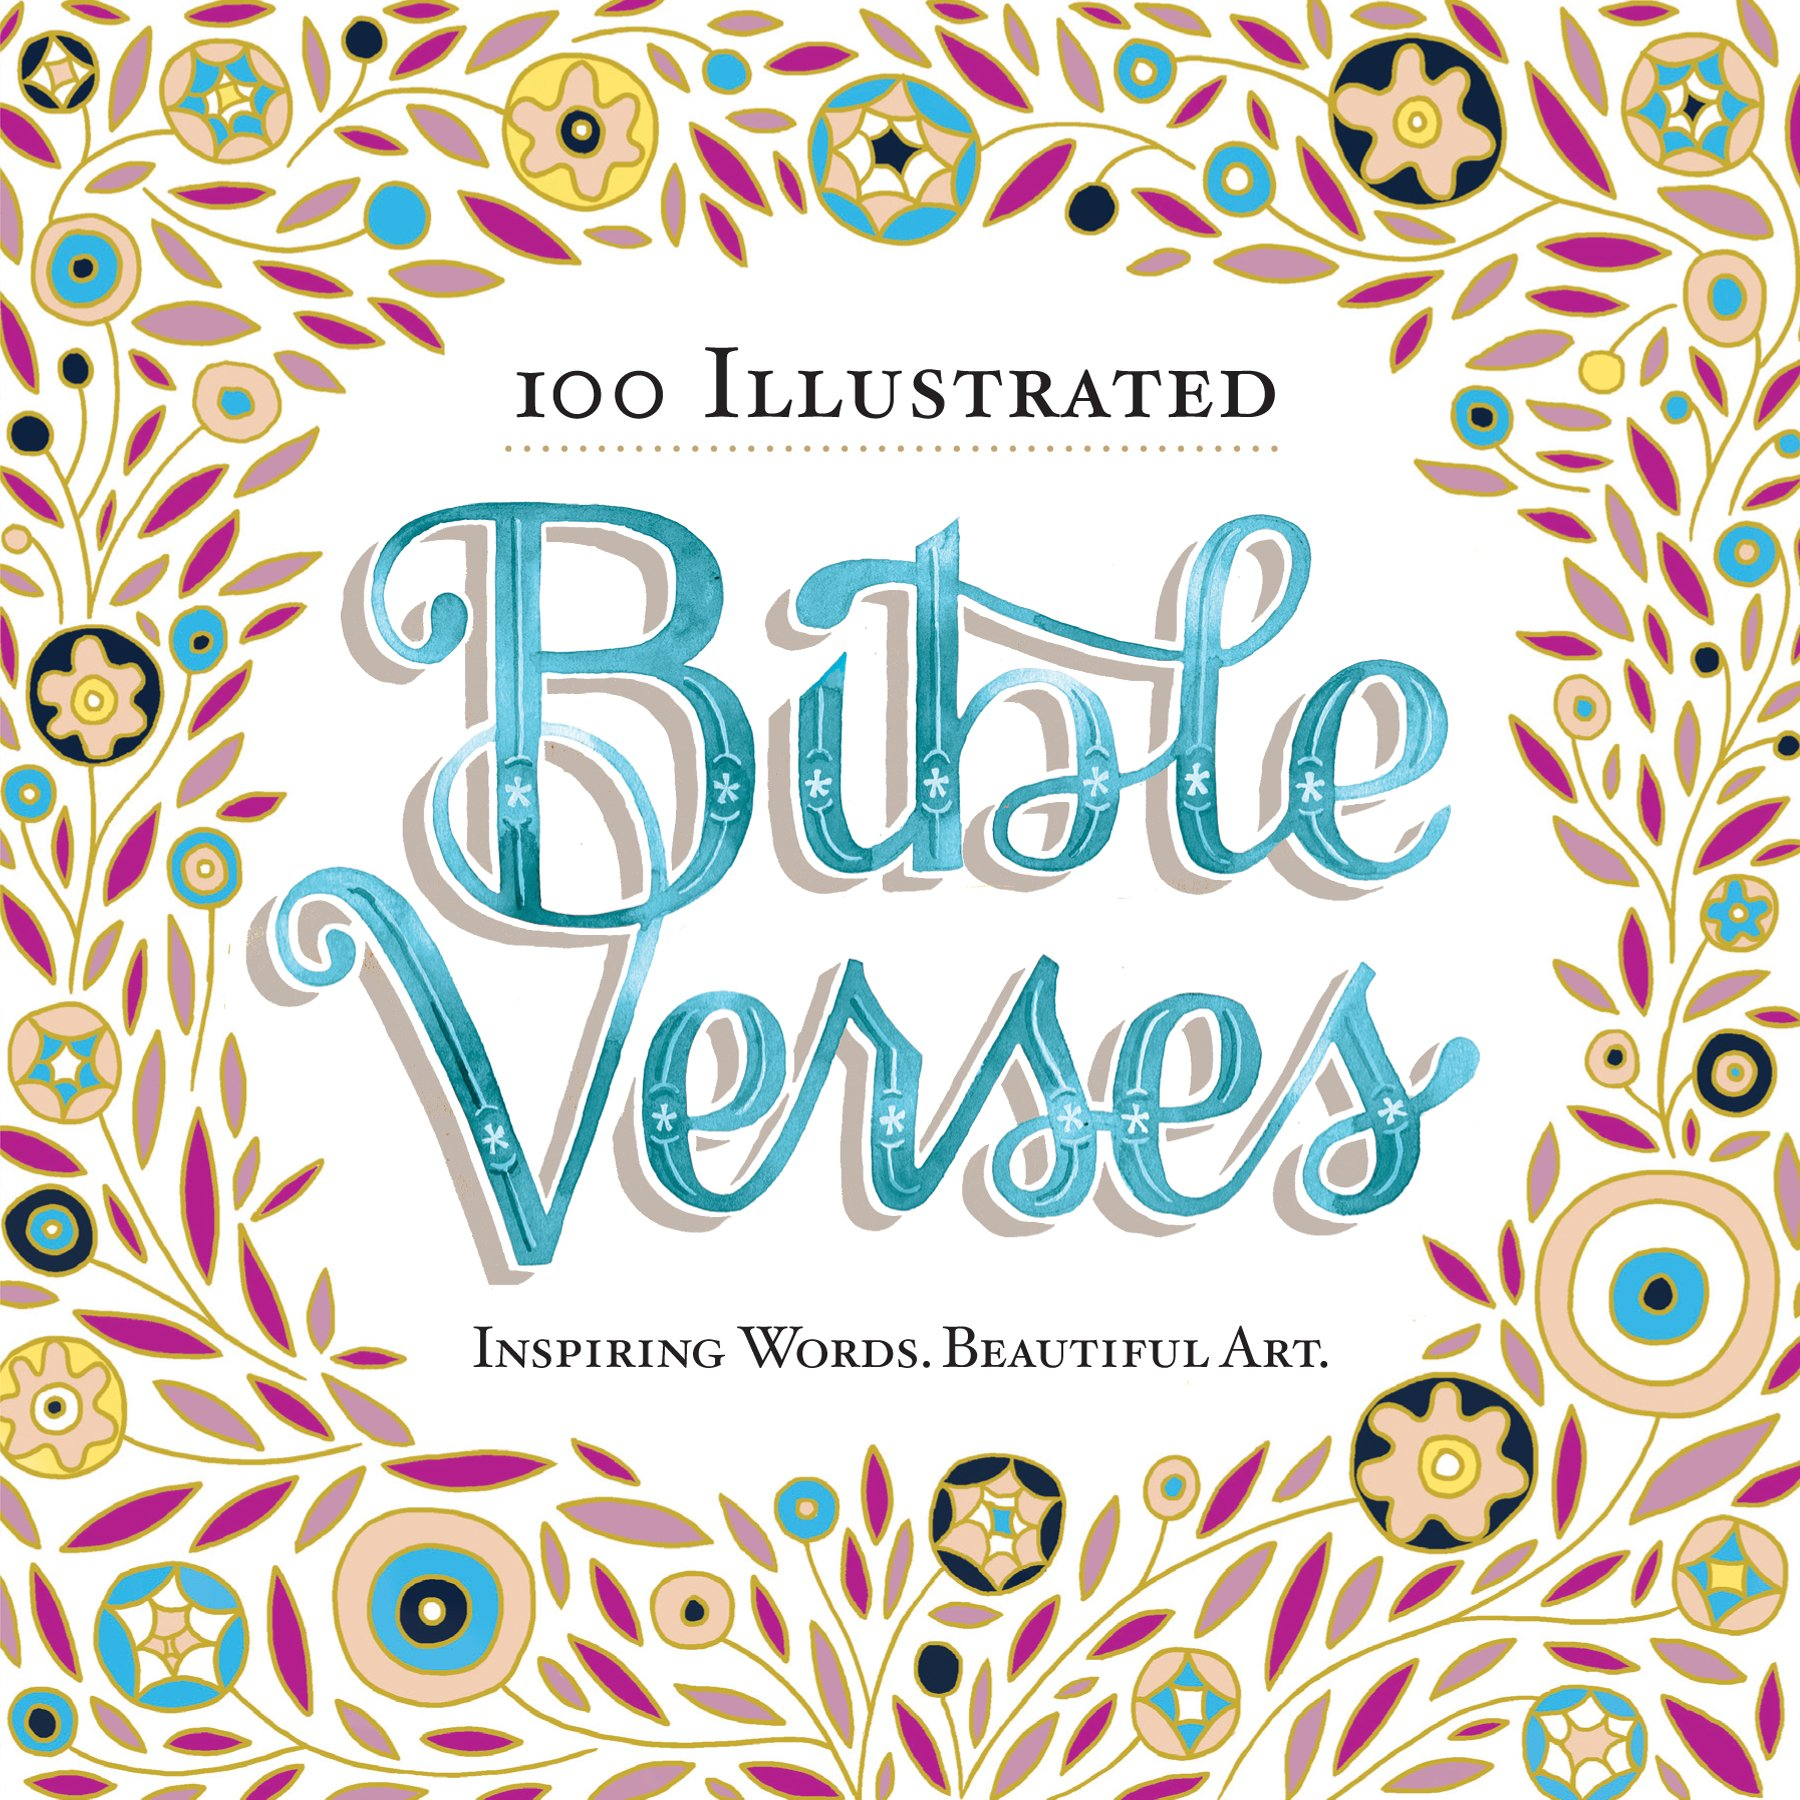 100 Illustrated Bible Verses Inspiring Words Beautiful Art